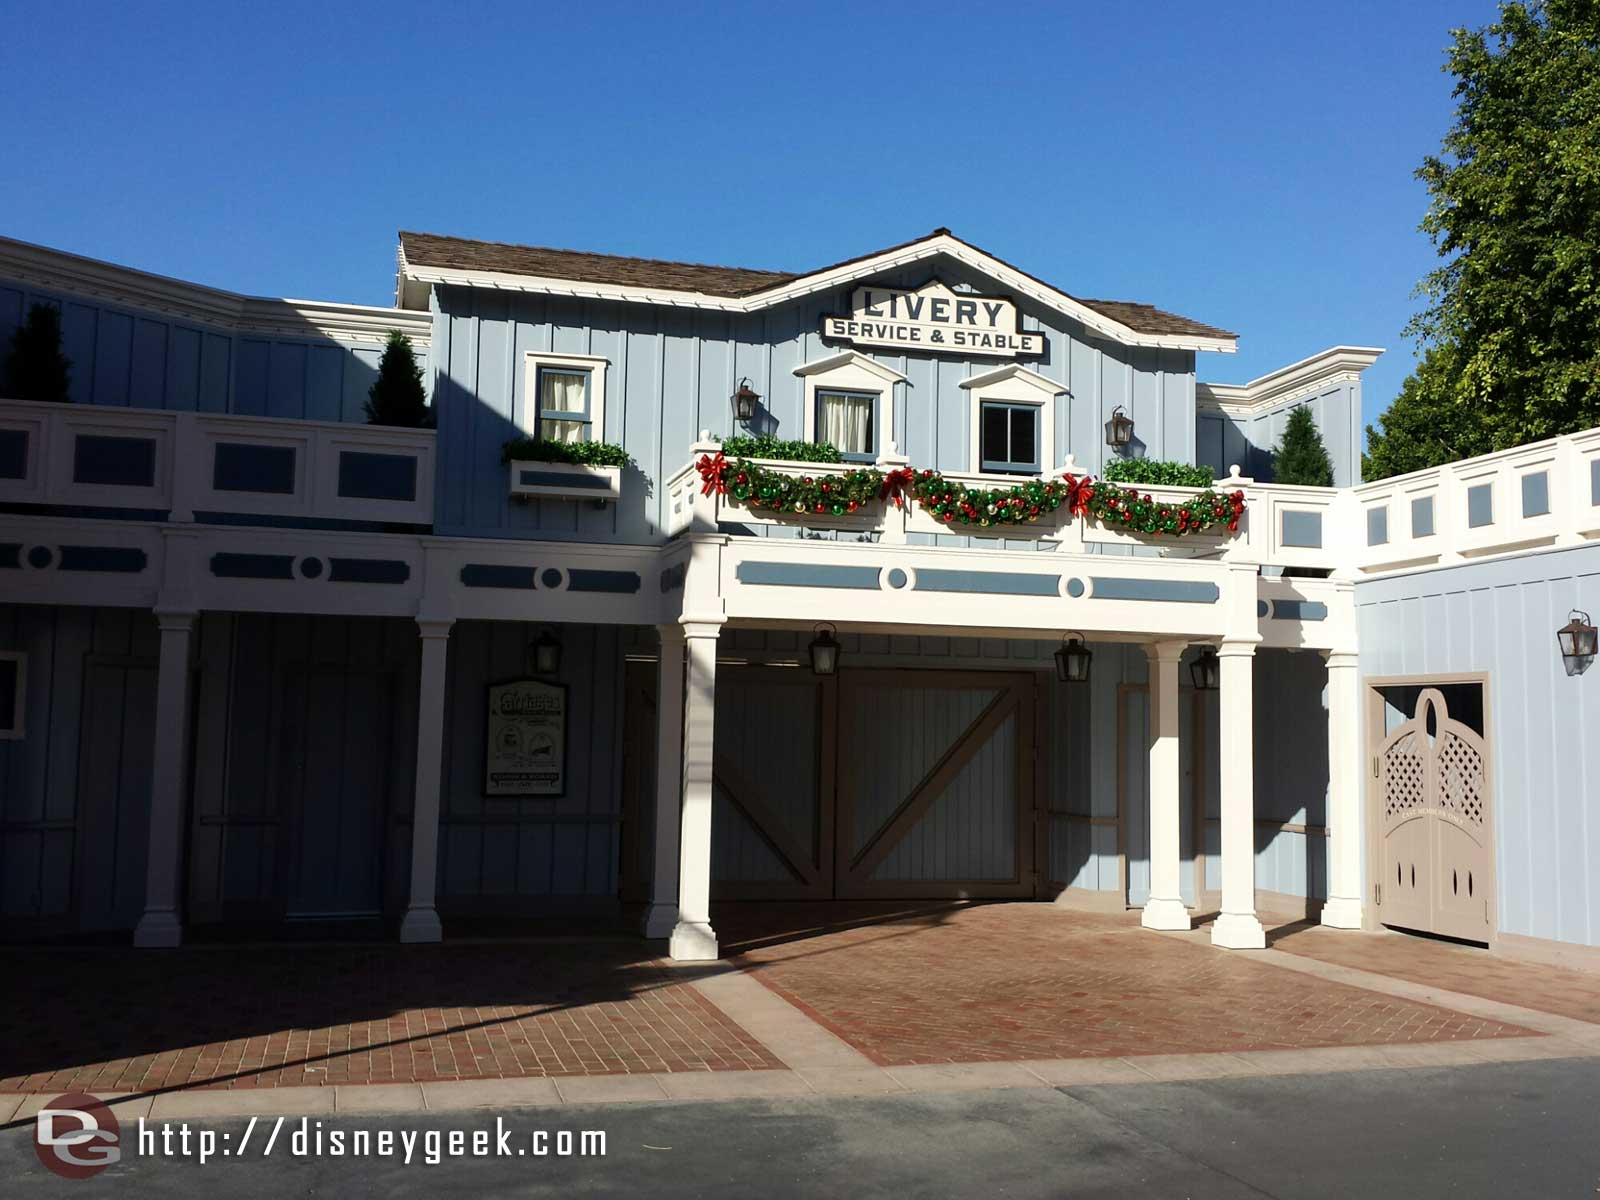 Decorations are up on Main Street and the new corridor facade is complete